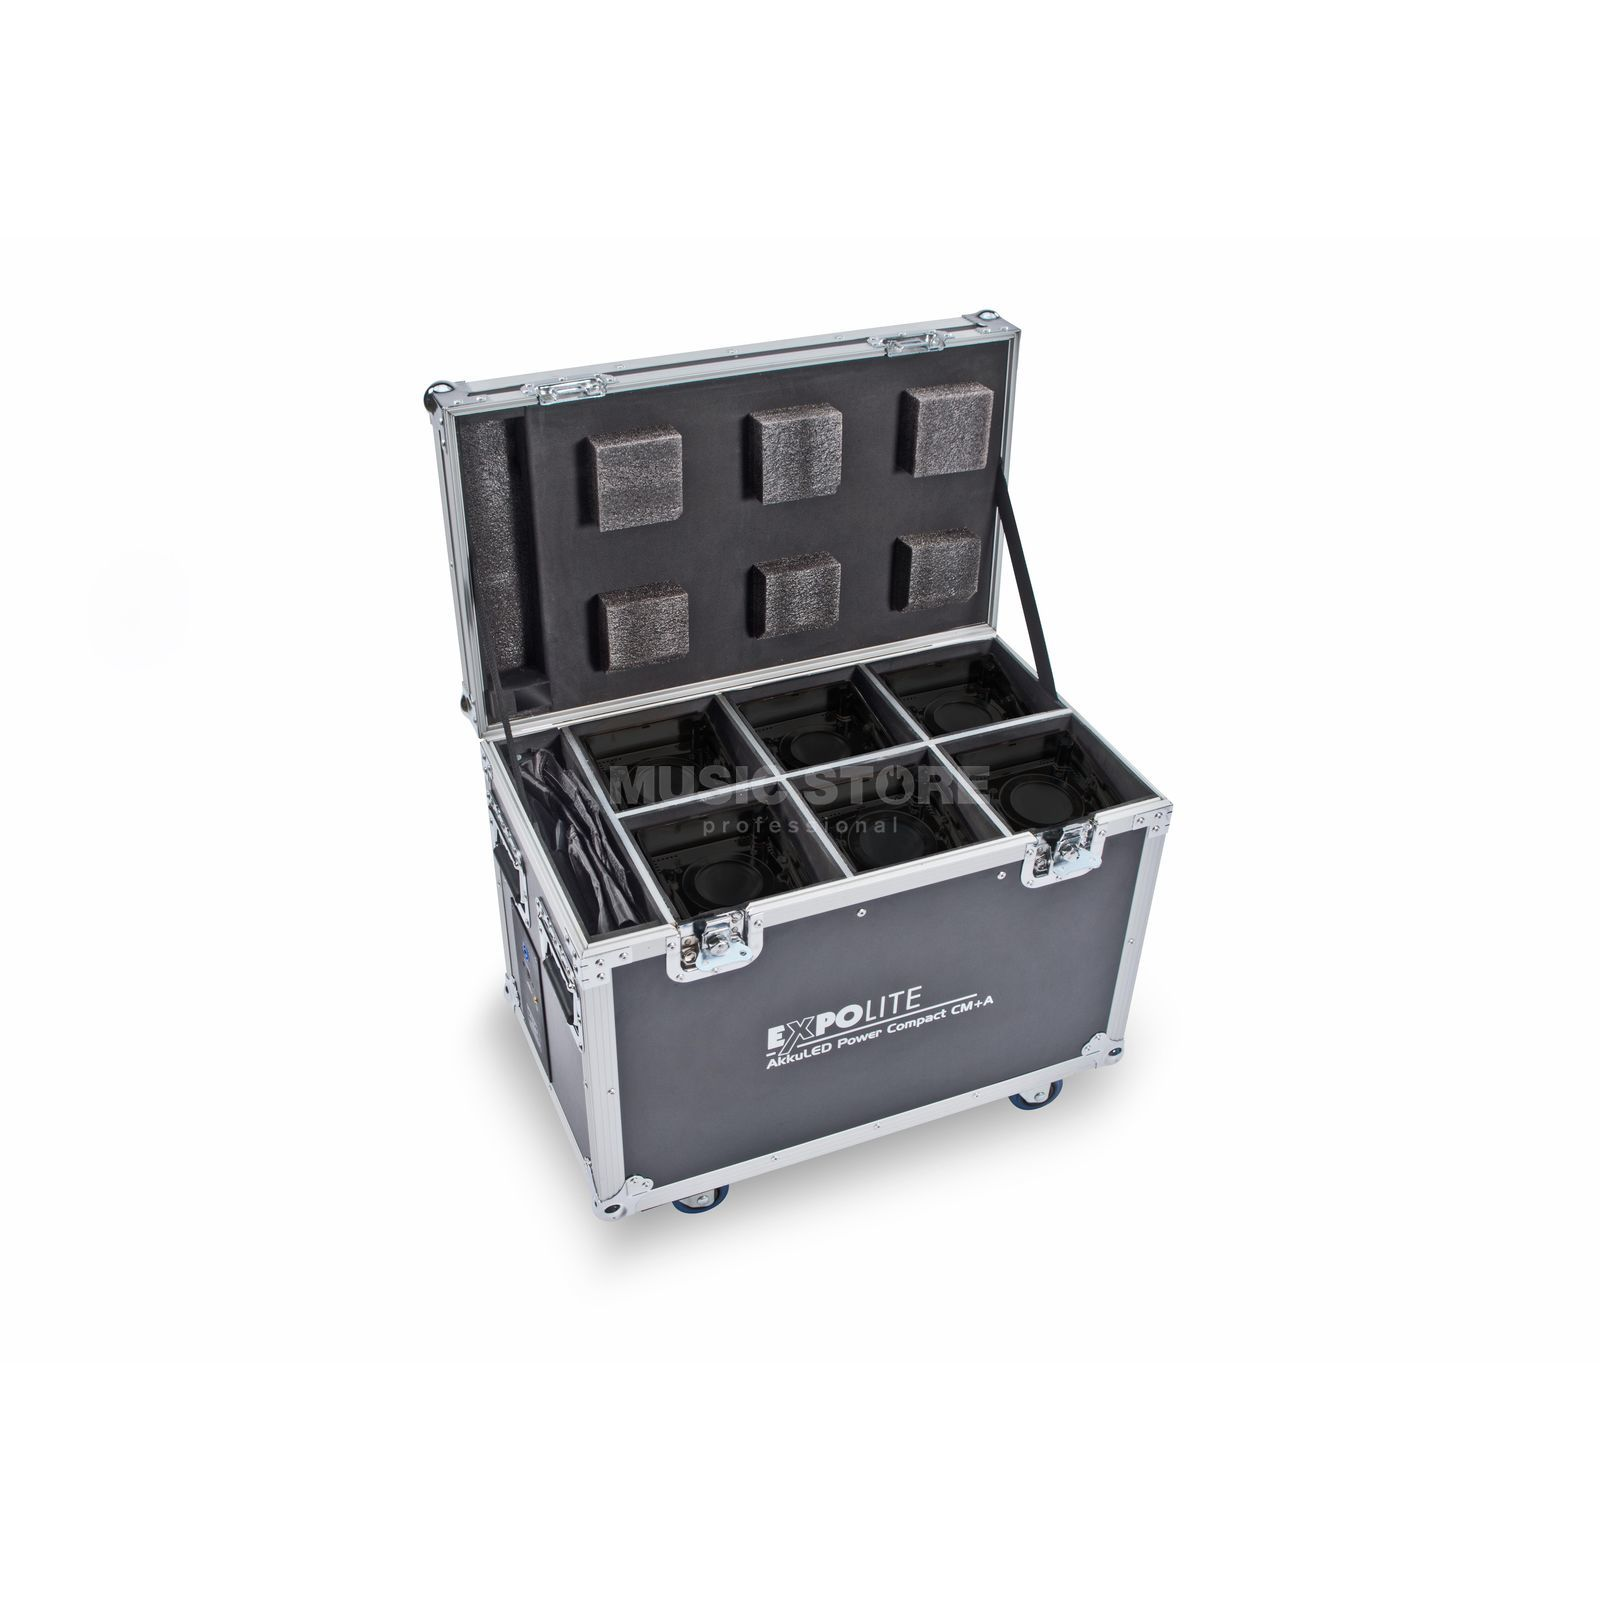 Expolite AkkuLED Power Compact 6-fach Case m. integr. Ladestation Product Image